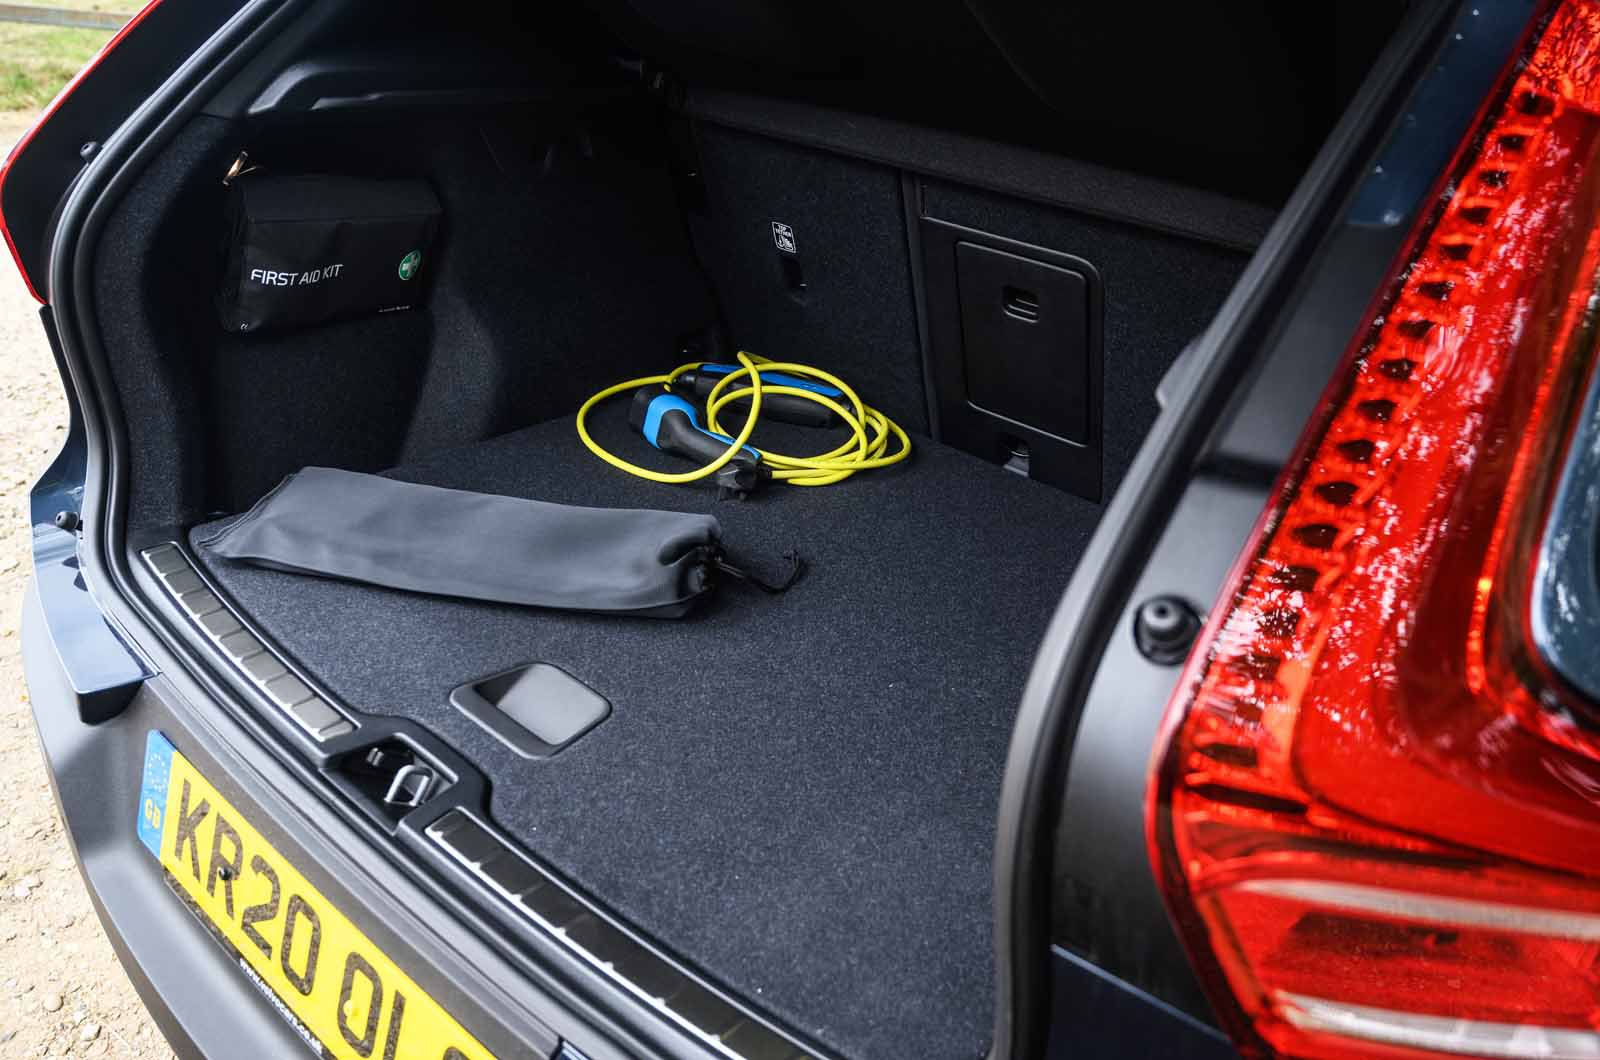 LT Volvo XC40 Recharge T5 boot with charging cable